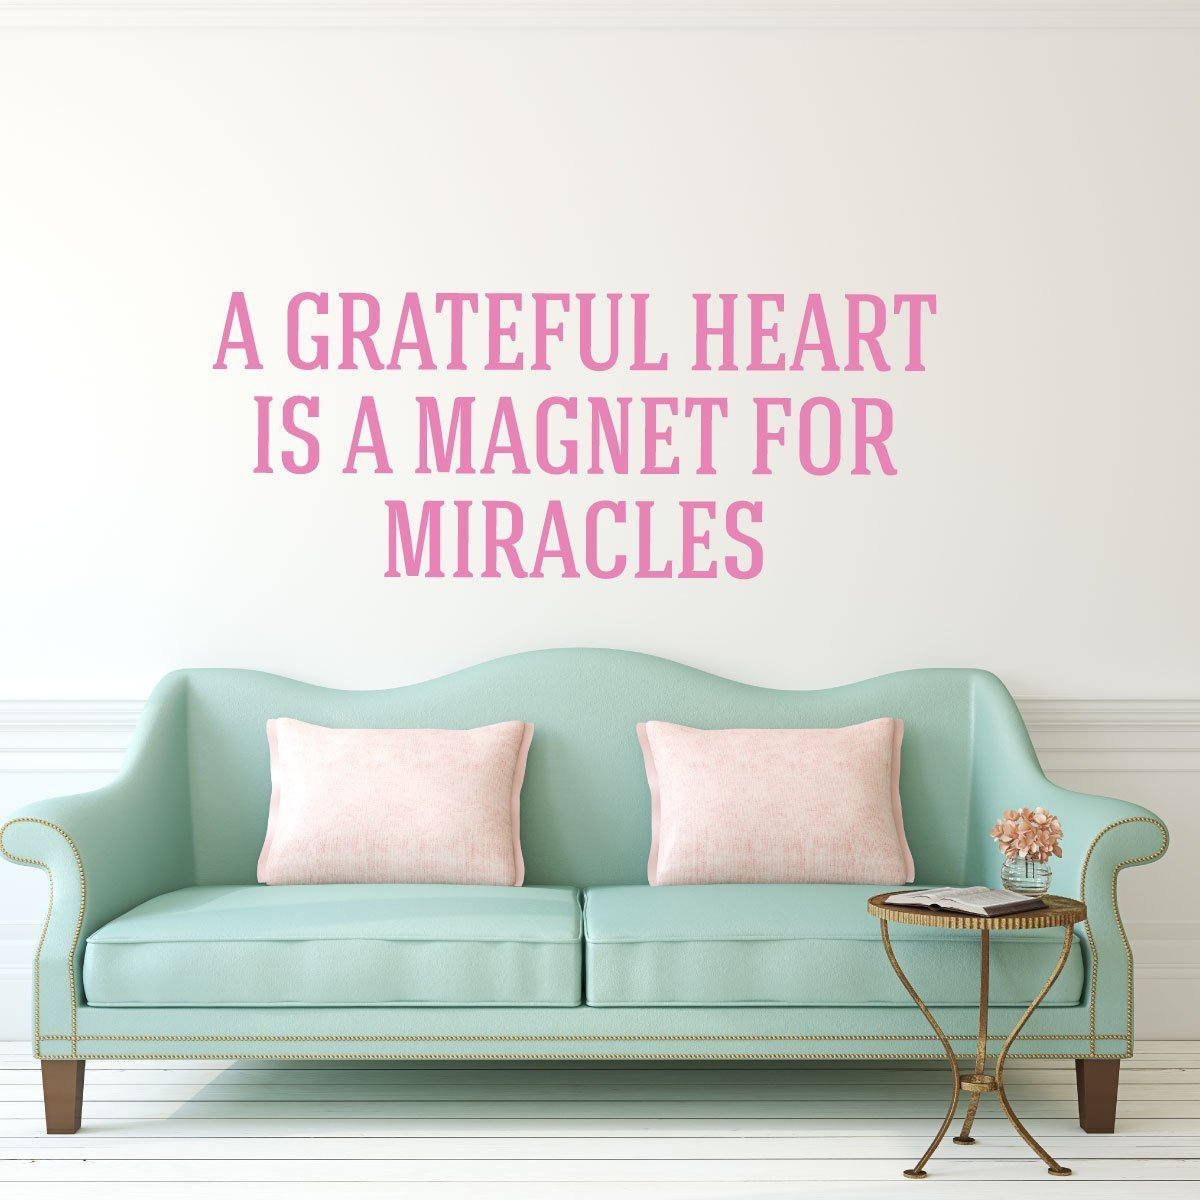 A Grateful Heart Is A Magnet For Miracles Quote Farmhouse Decor Wall Sign Vinyl Decal Gratitude Quote Family Gift Handmade Amazon Com